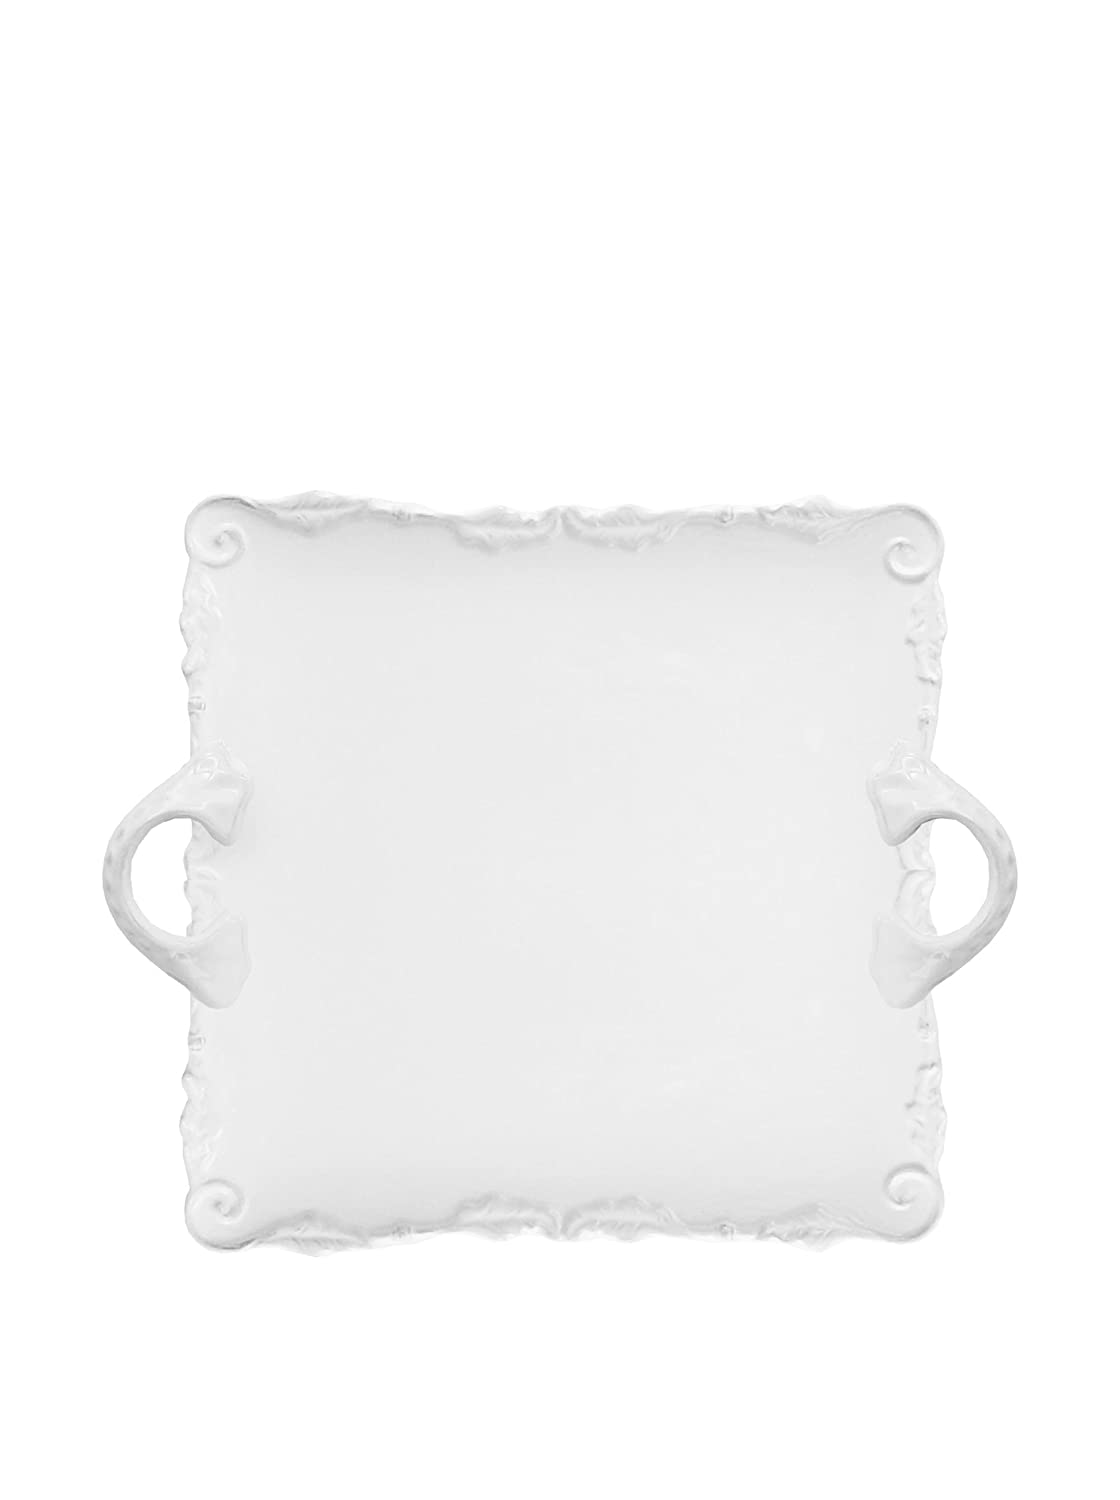 Christmas Tablescape Décor - Bianca Wave White Square Handled Ceramic Platter by American Atelier Bianca